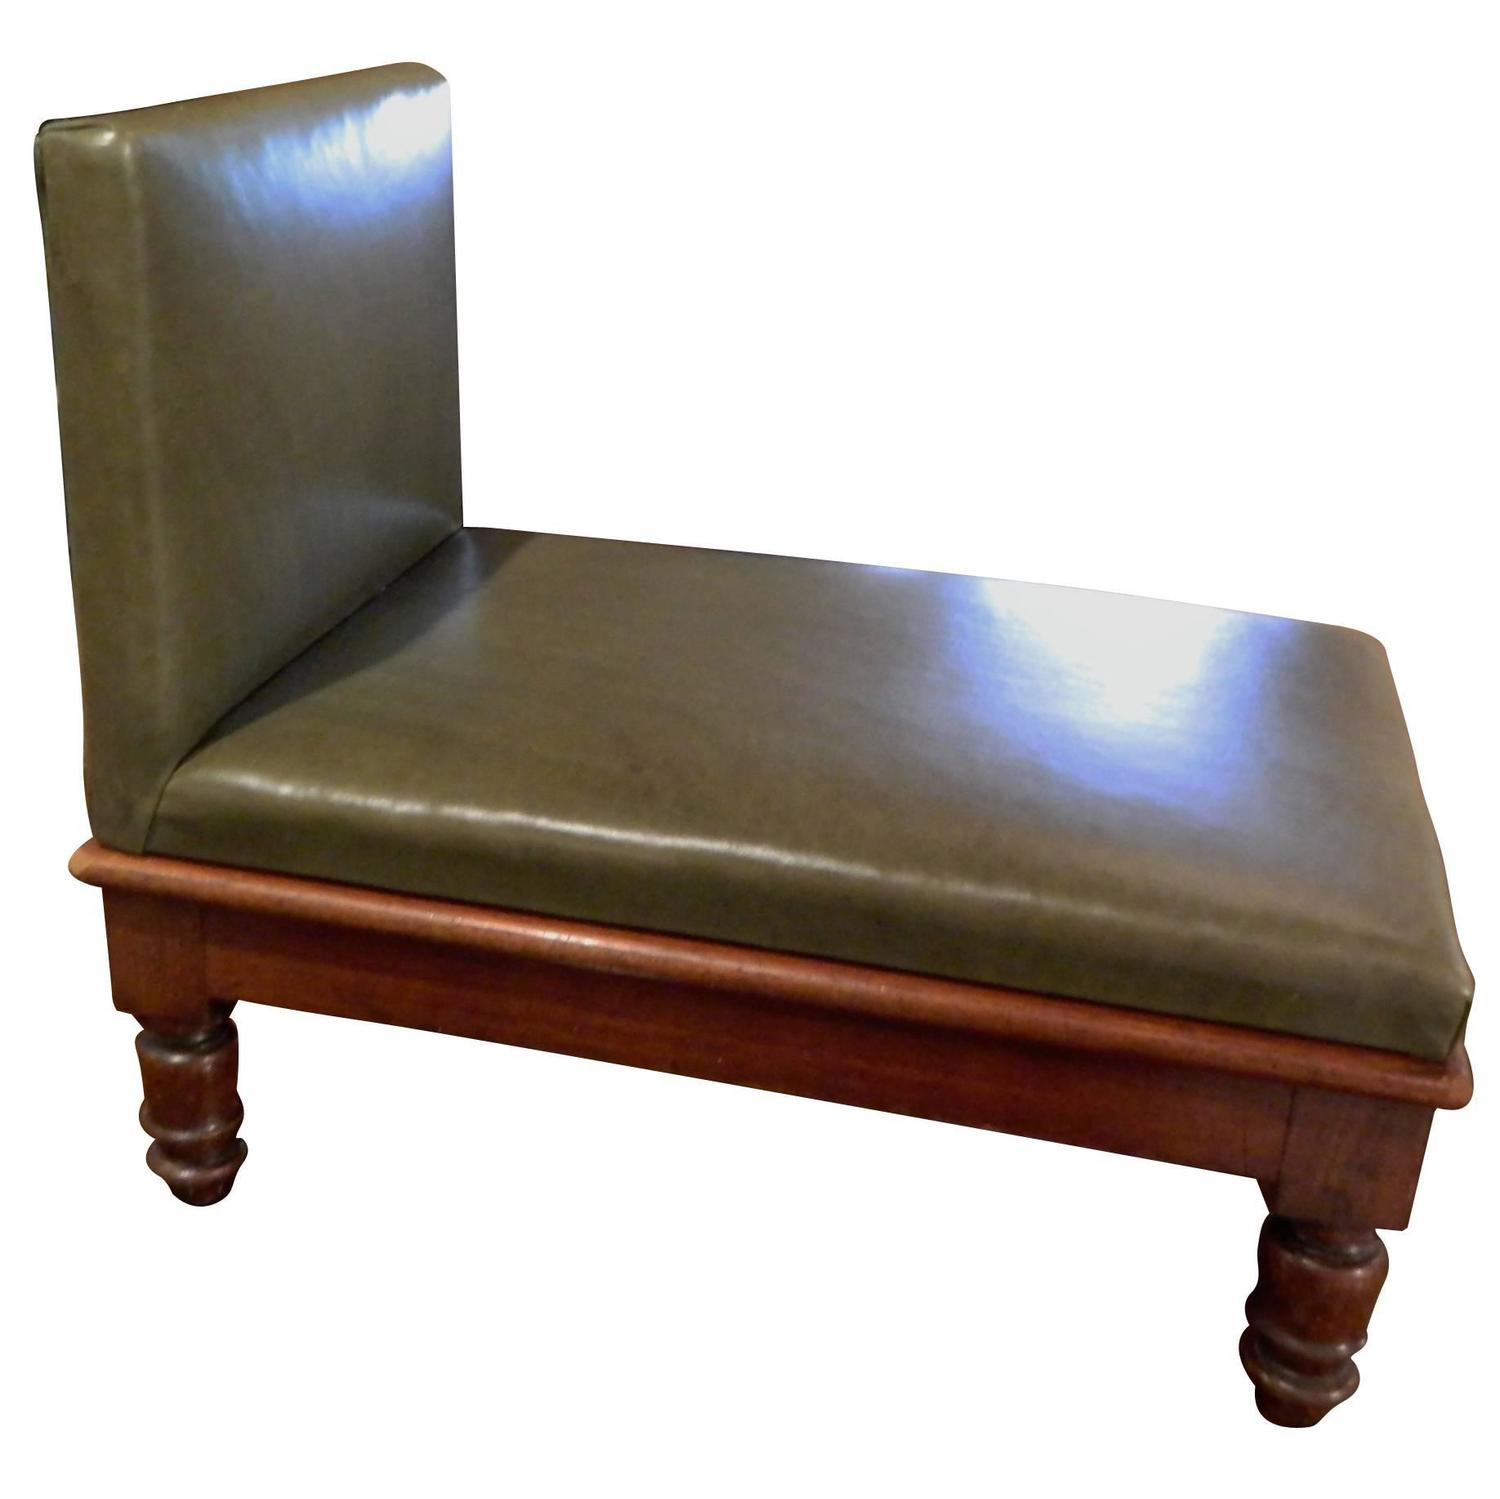 English Metamorphic Mahogany And Leather Upholstered Foot